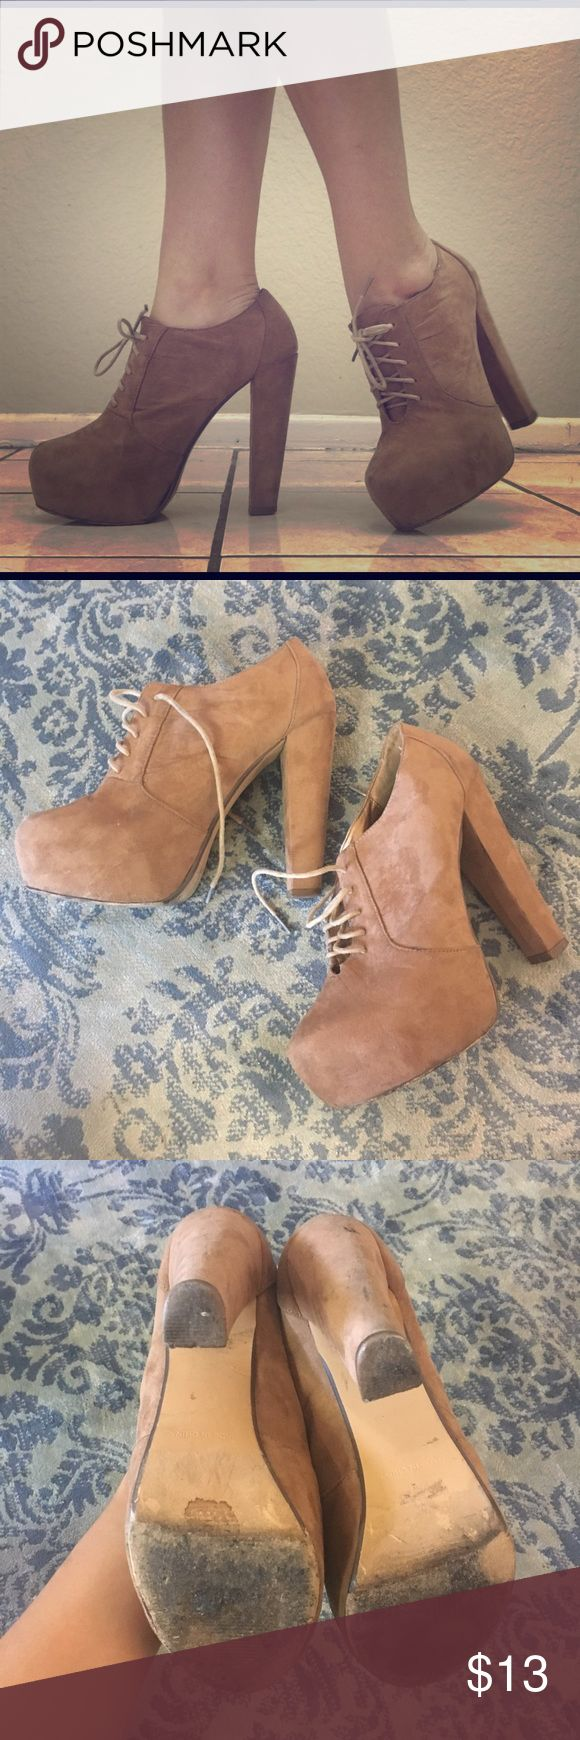 Chunky high heel ankle booties Surprisingly comfortable very high heels. Signs of wear on soles and heels, but still totally wearable! Forever 21 Shoes